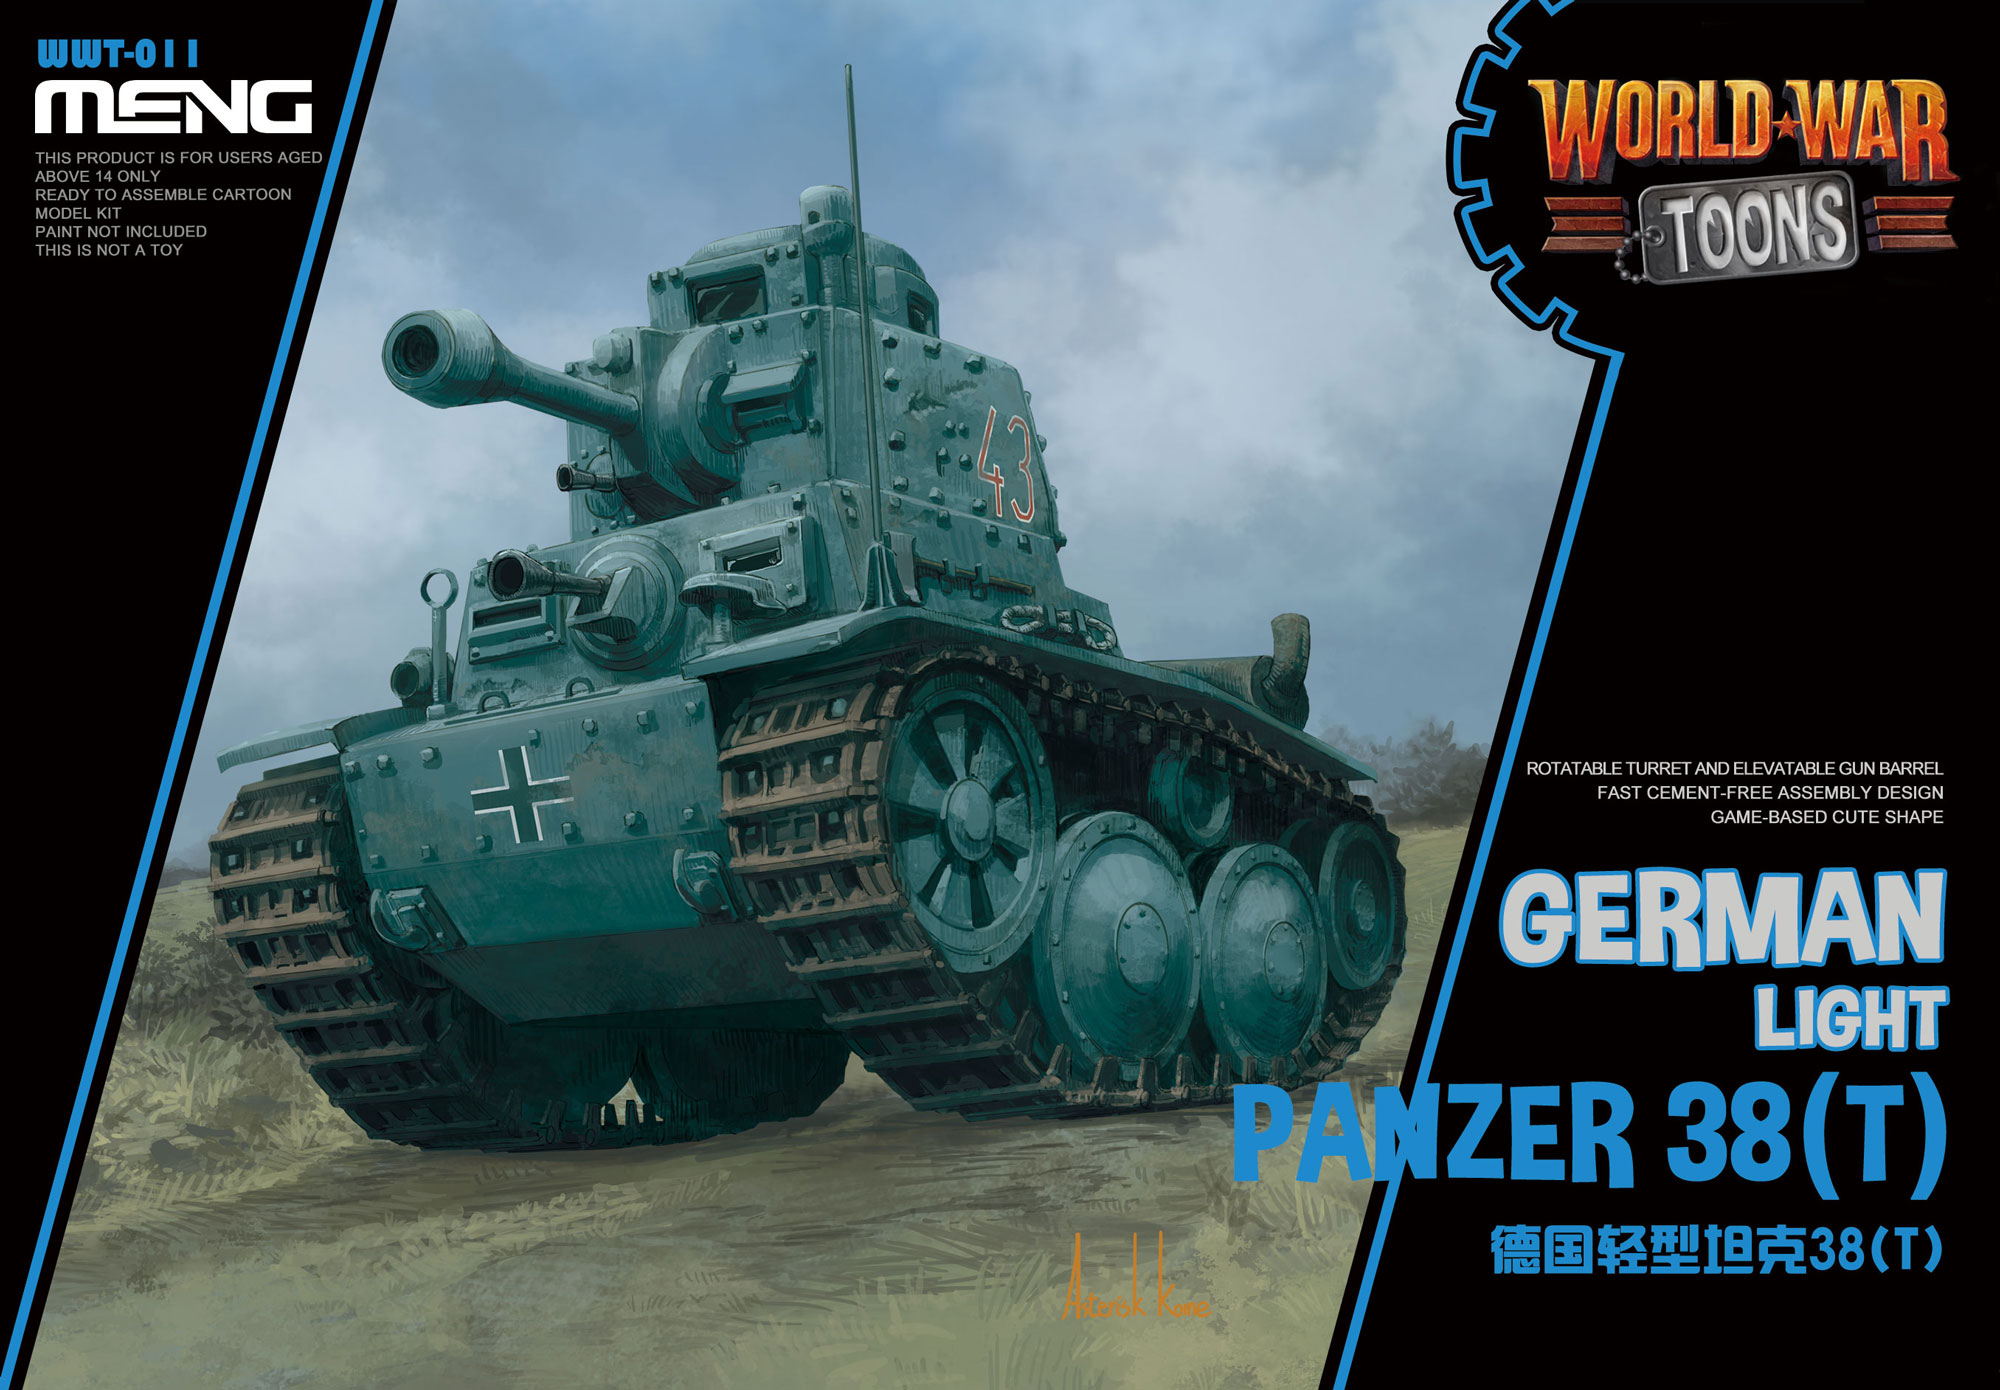 Meng German Light Panzer 38(T) (CARTOON MODEL)